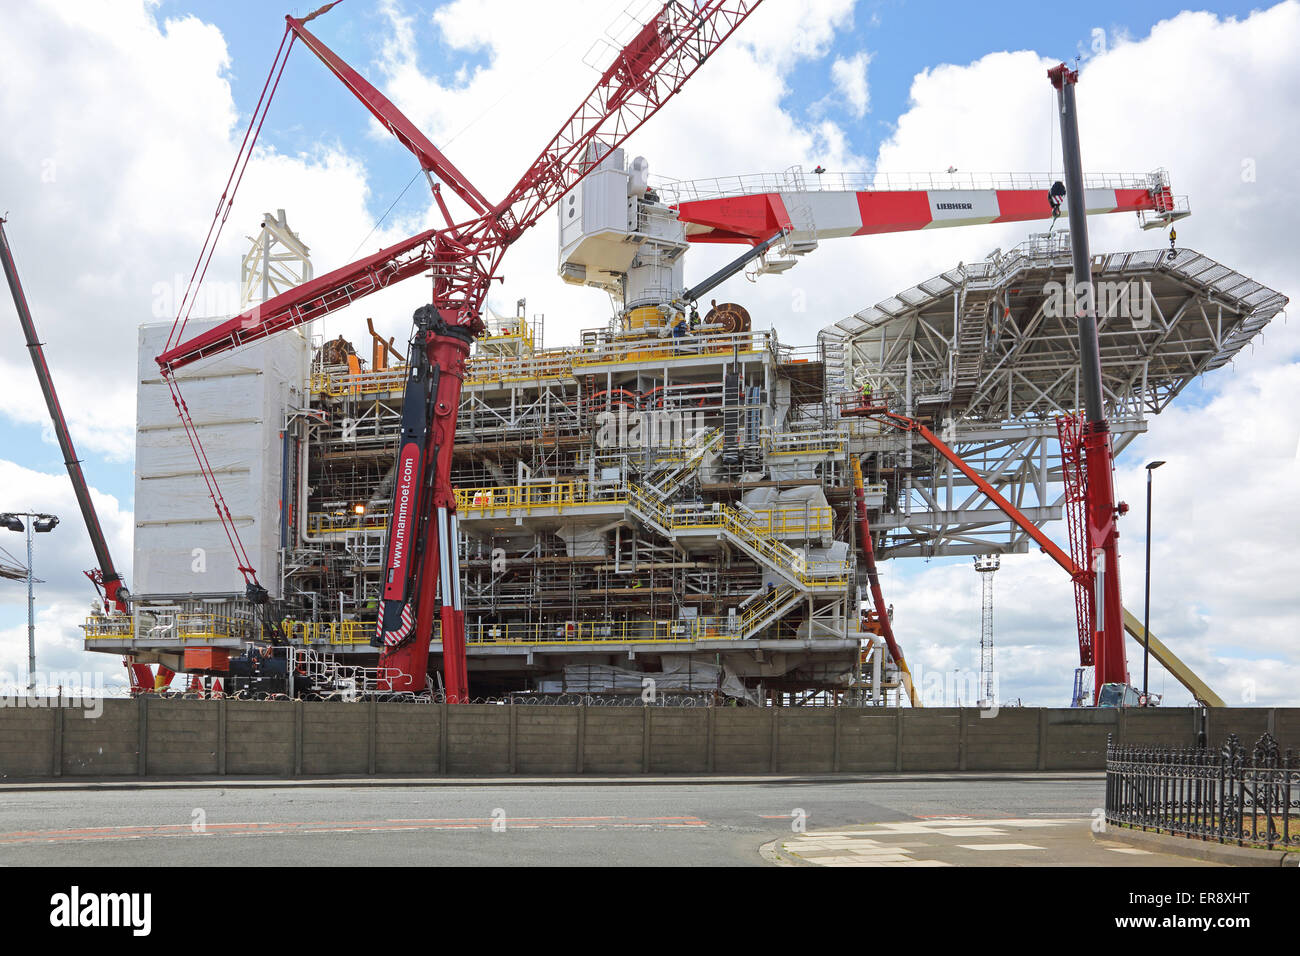 The top section of a new oil production platform nears completion on the dockside in Harlepool, UK. - Stock Image